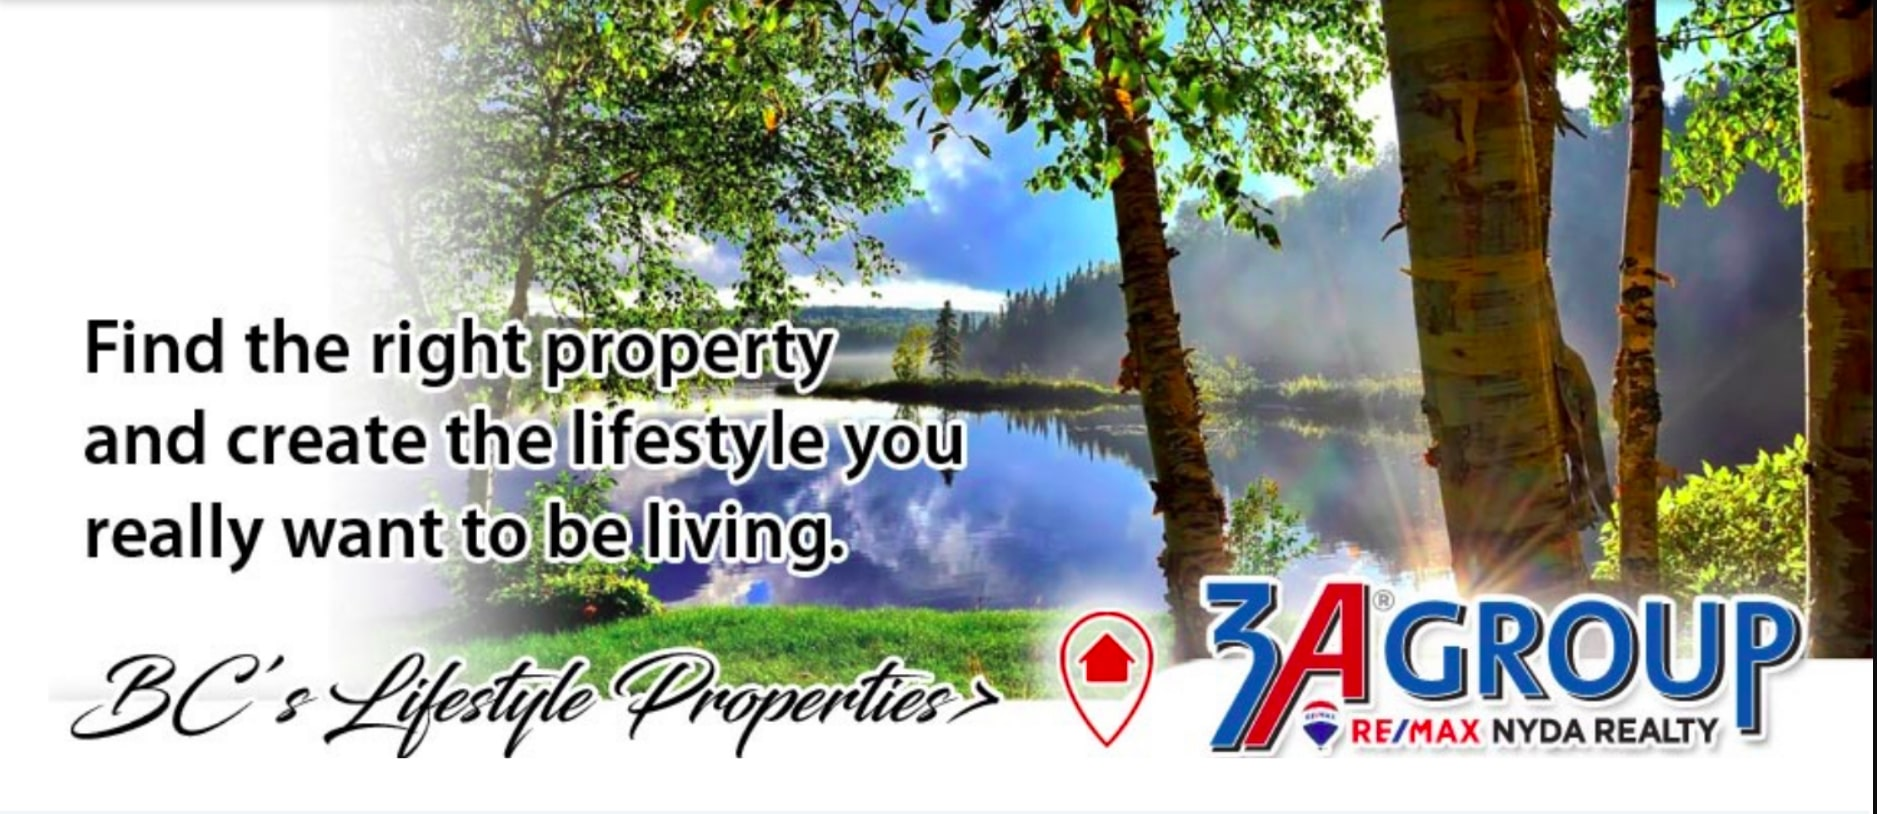 Find the right property and create the lifestyle you really want to be living, BC's Lifestyle Properties by the 3A Group